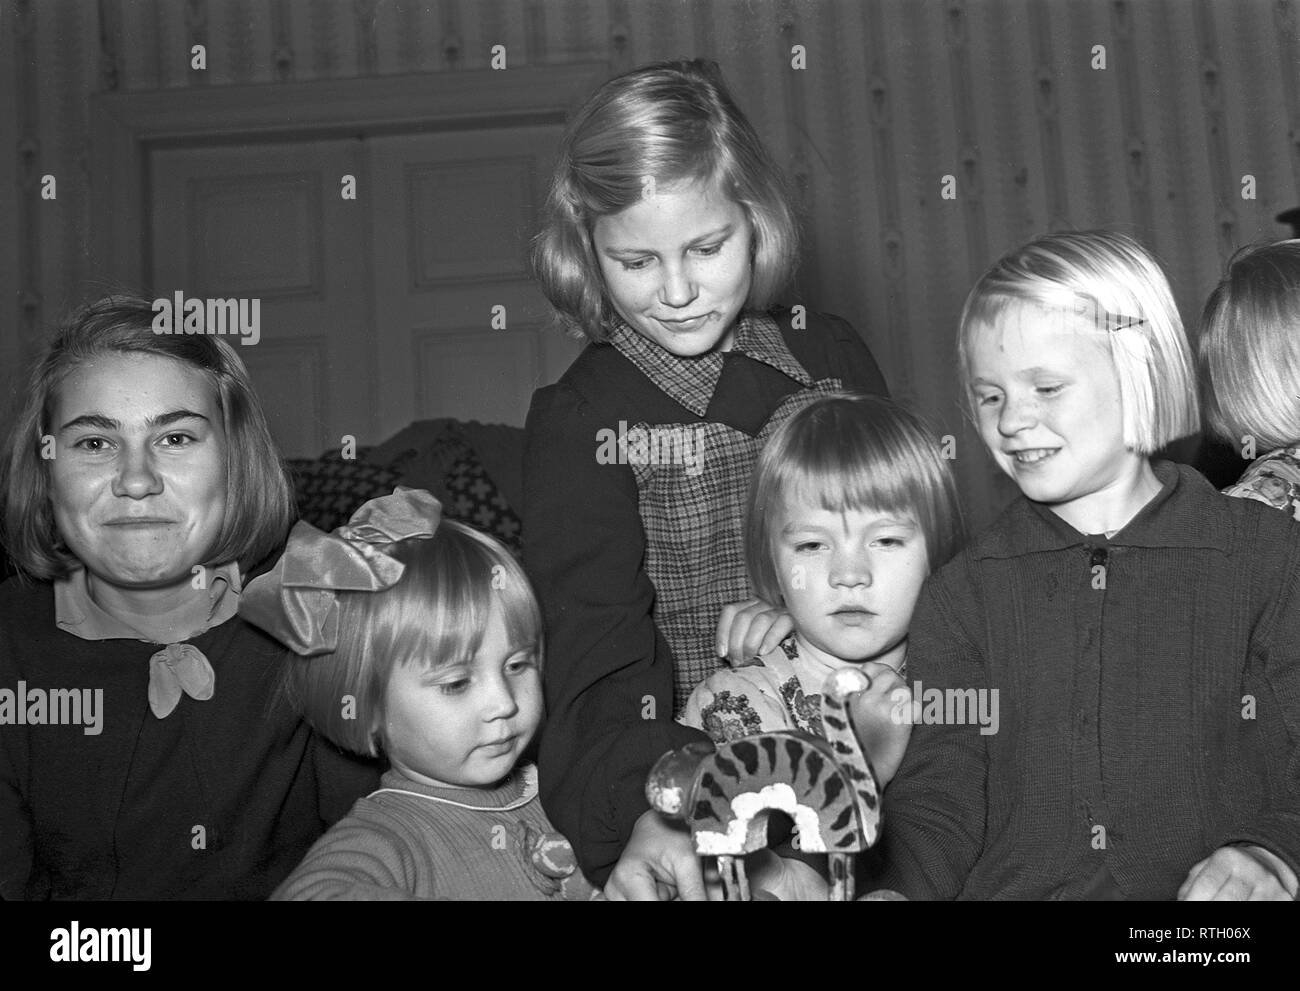 The Winter War. A military conflict between the Soviet union and Finland. It began with a Soviet invasion on november 1939 when Soviet infantery crossed the border on the Karelian Isthmus. About 9500 Swedish volunteer soldiers participated in the war. Finnish children in Helsinki who has been evacuated from the Karelian isthmus, playing with a toy. Januari 1940  Photo Kristoffersson ref 98-19. - Stock Image